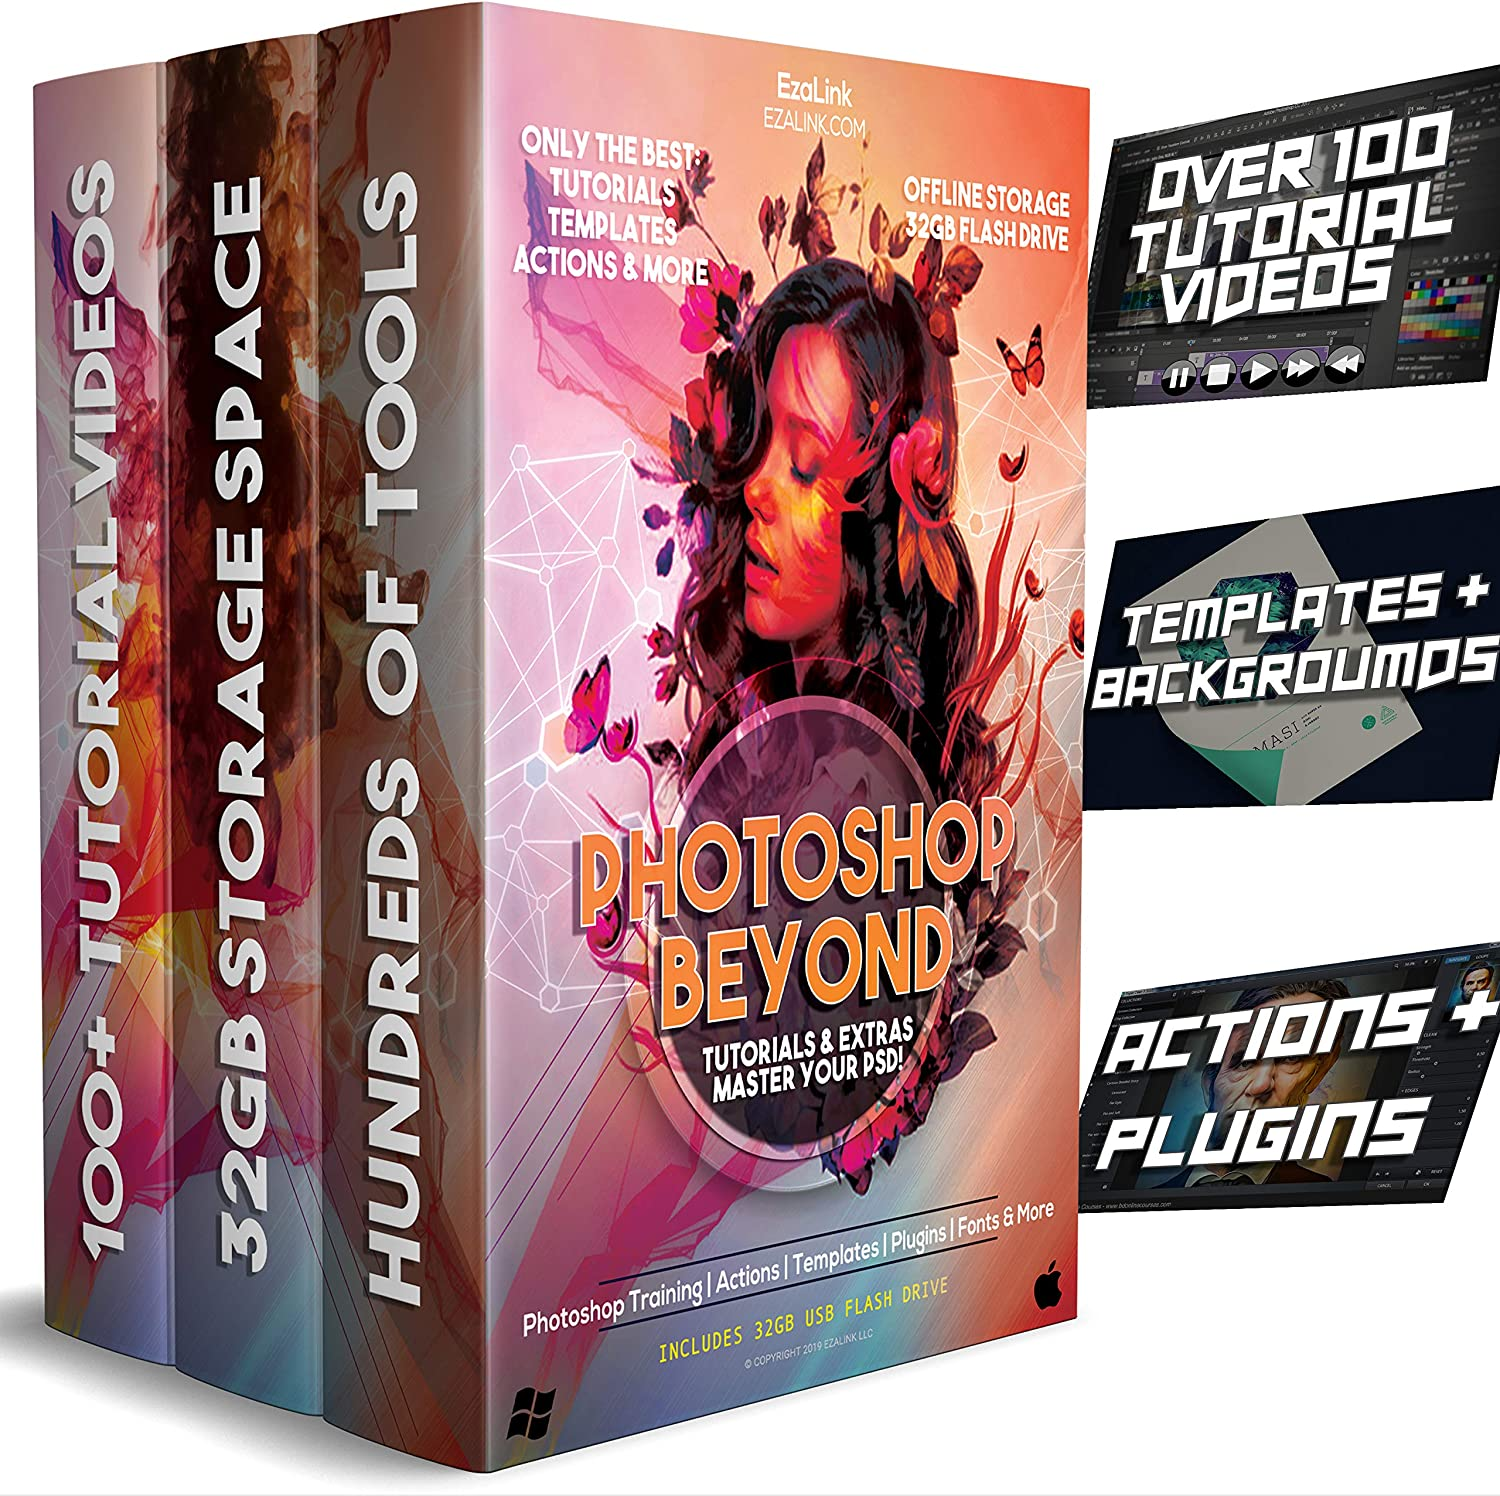 B07R3DSS4T Learn Photoshop Bundle: 100+ Video Tutorials, Accessories, HD Backgrounds, Templates, Fonts, Effects, Actions, Plugins & Guide Book for Beginners & Pro USB - Elements or CC 91smsOw5sXL